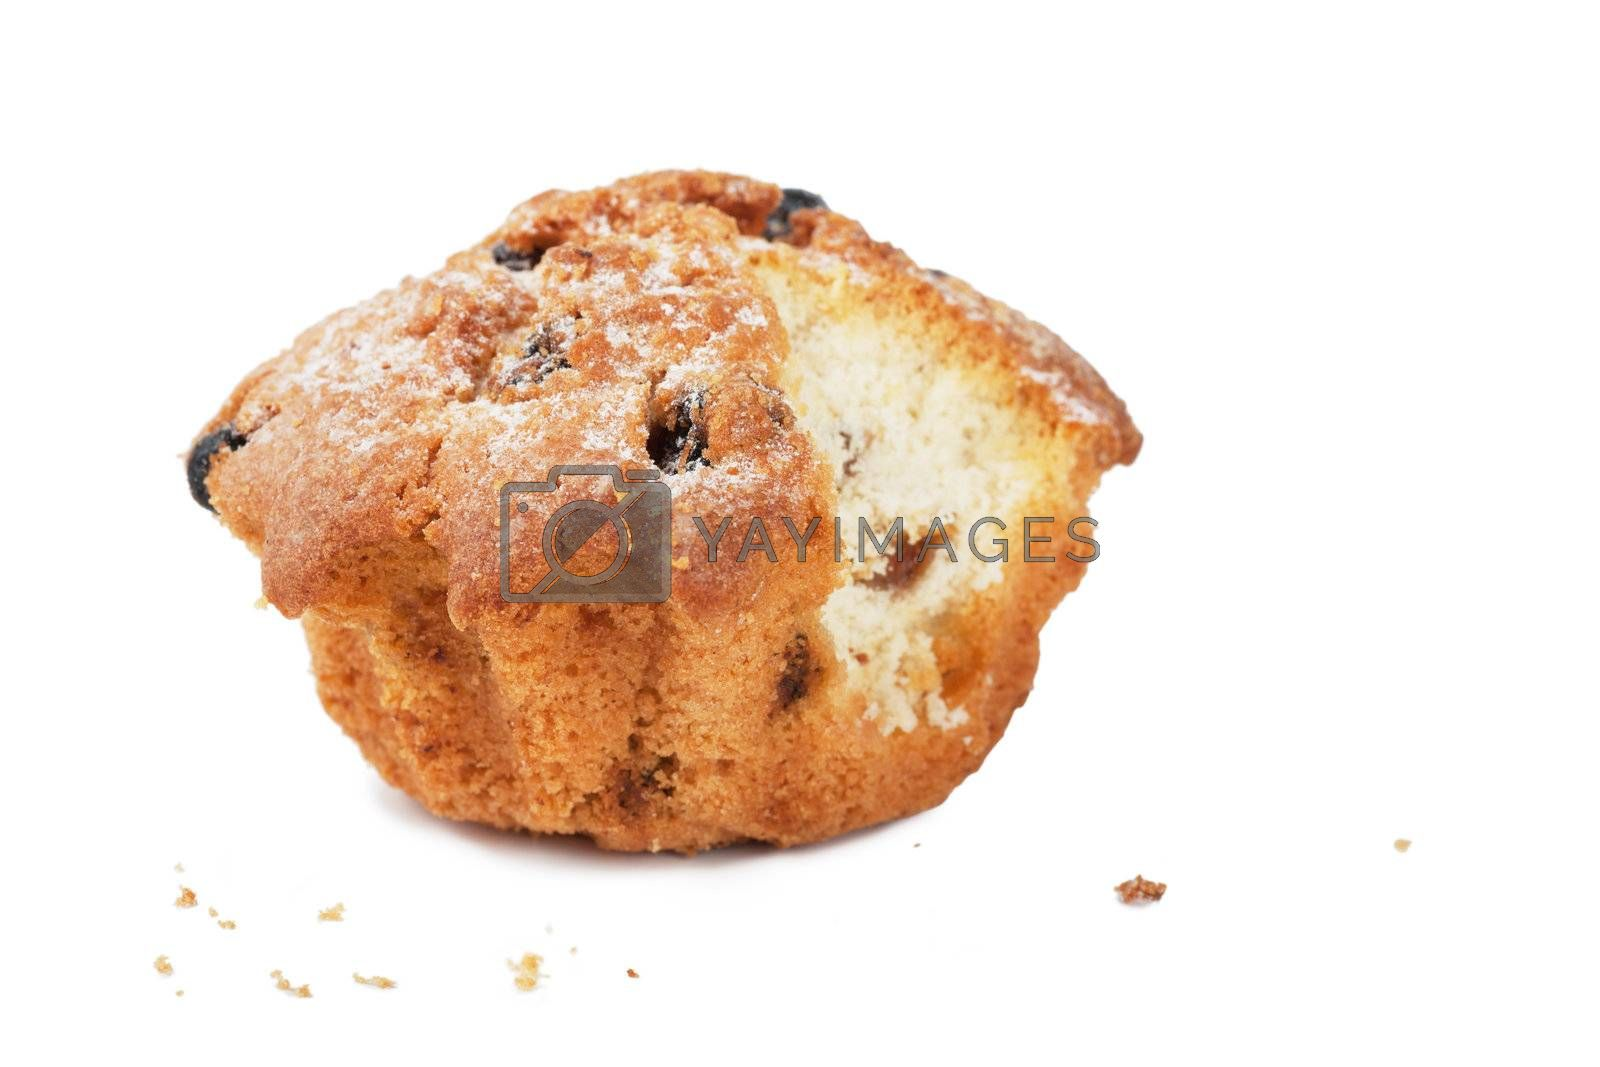 Closeup view of single cake with raisins over white background